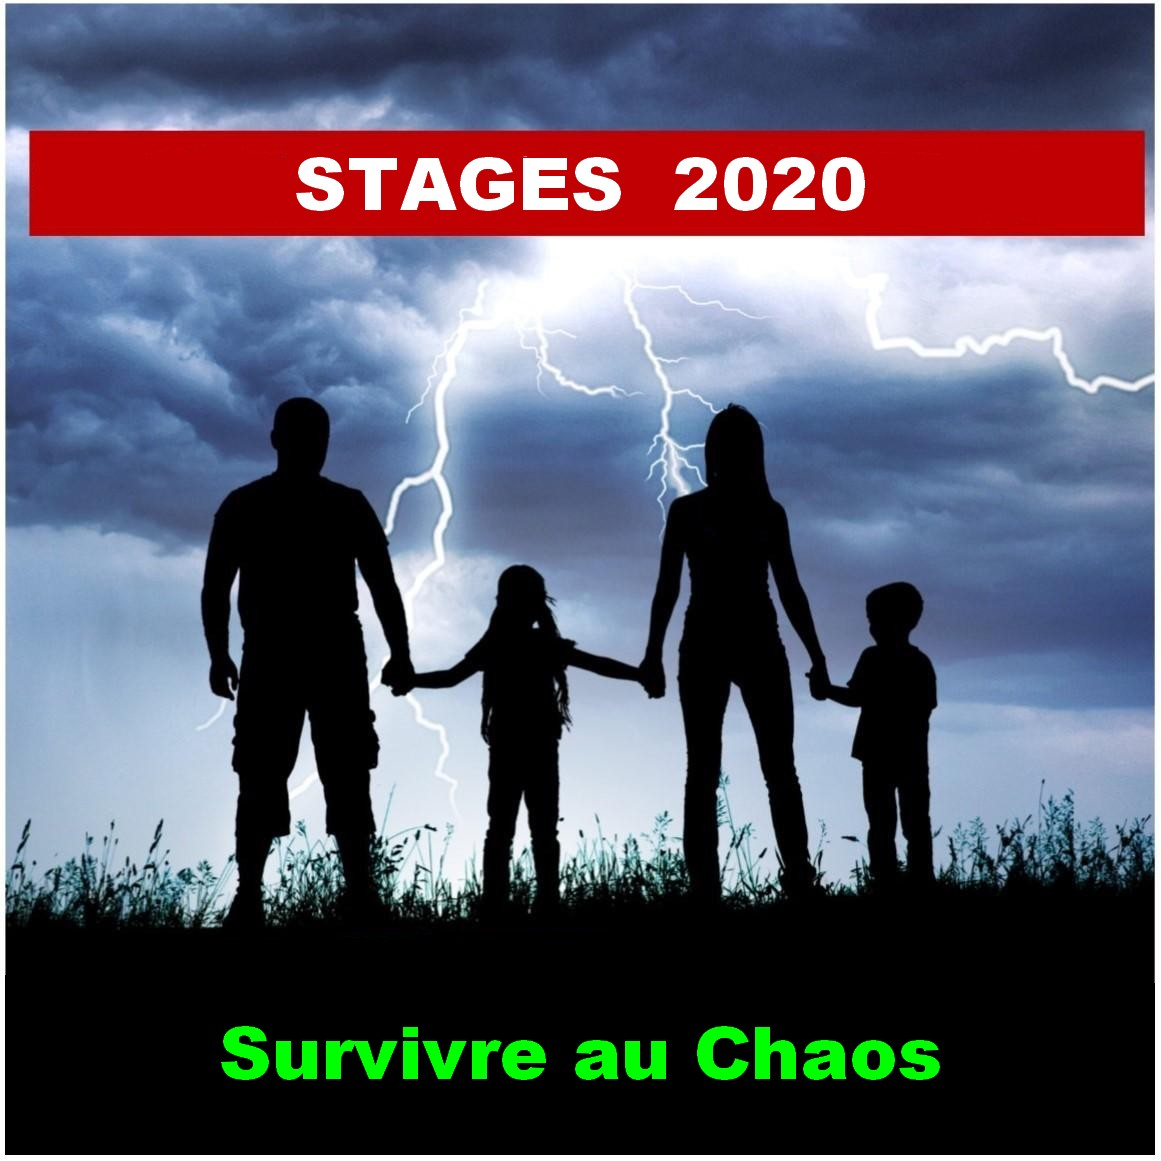 STAGES 2020